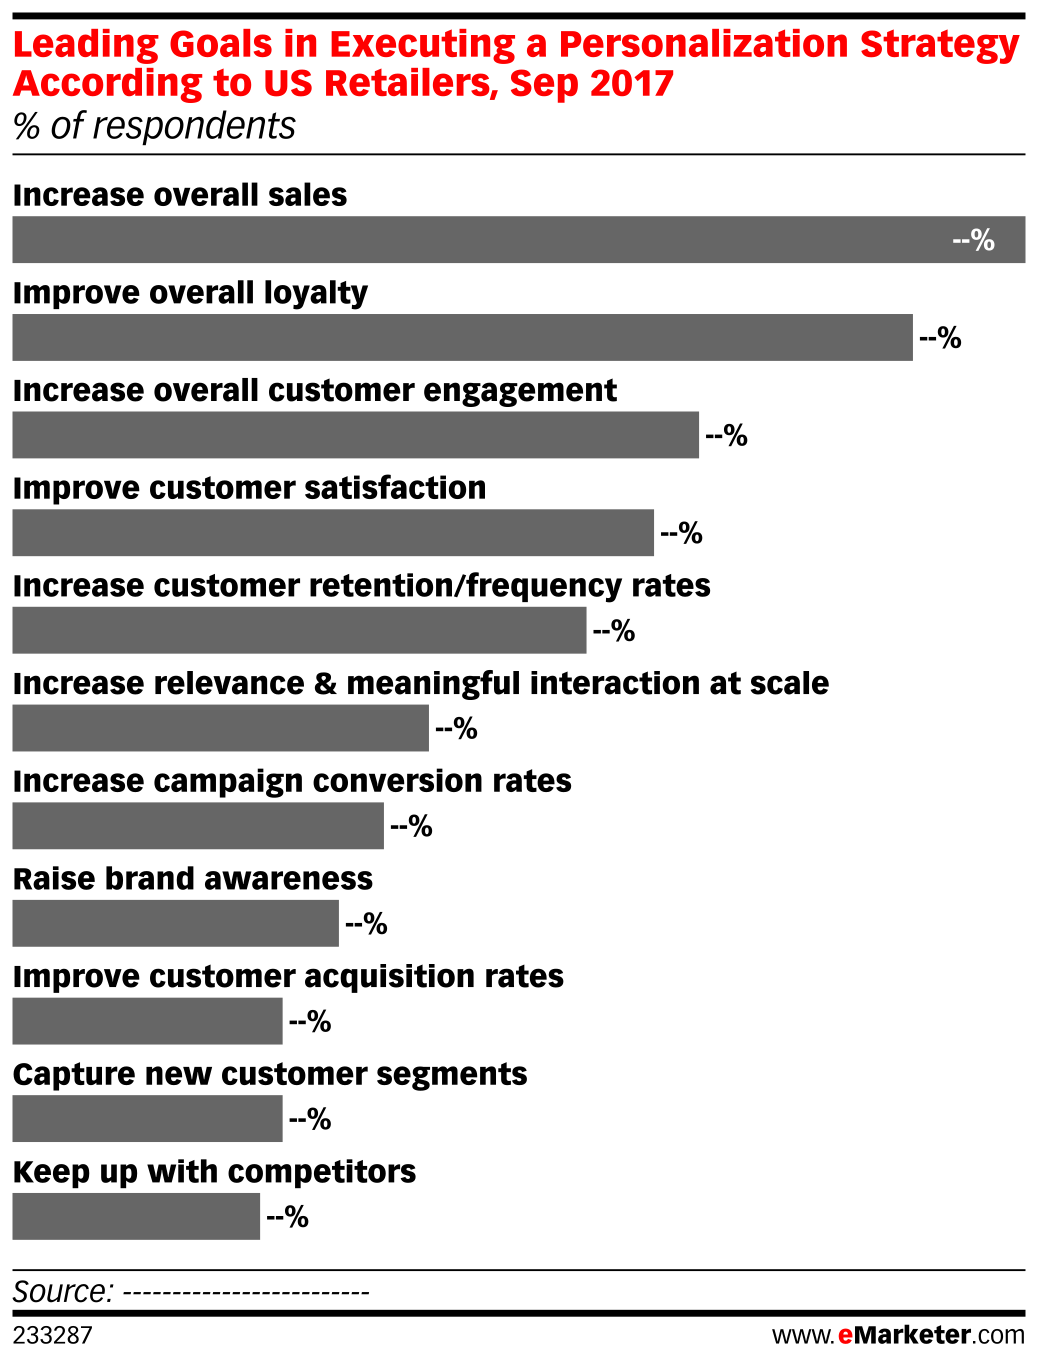 Leading Goals in Executing a Personalization Strategy According to US Retailers, Sep 2017 (% of respondents)